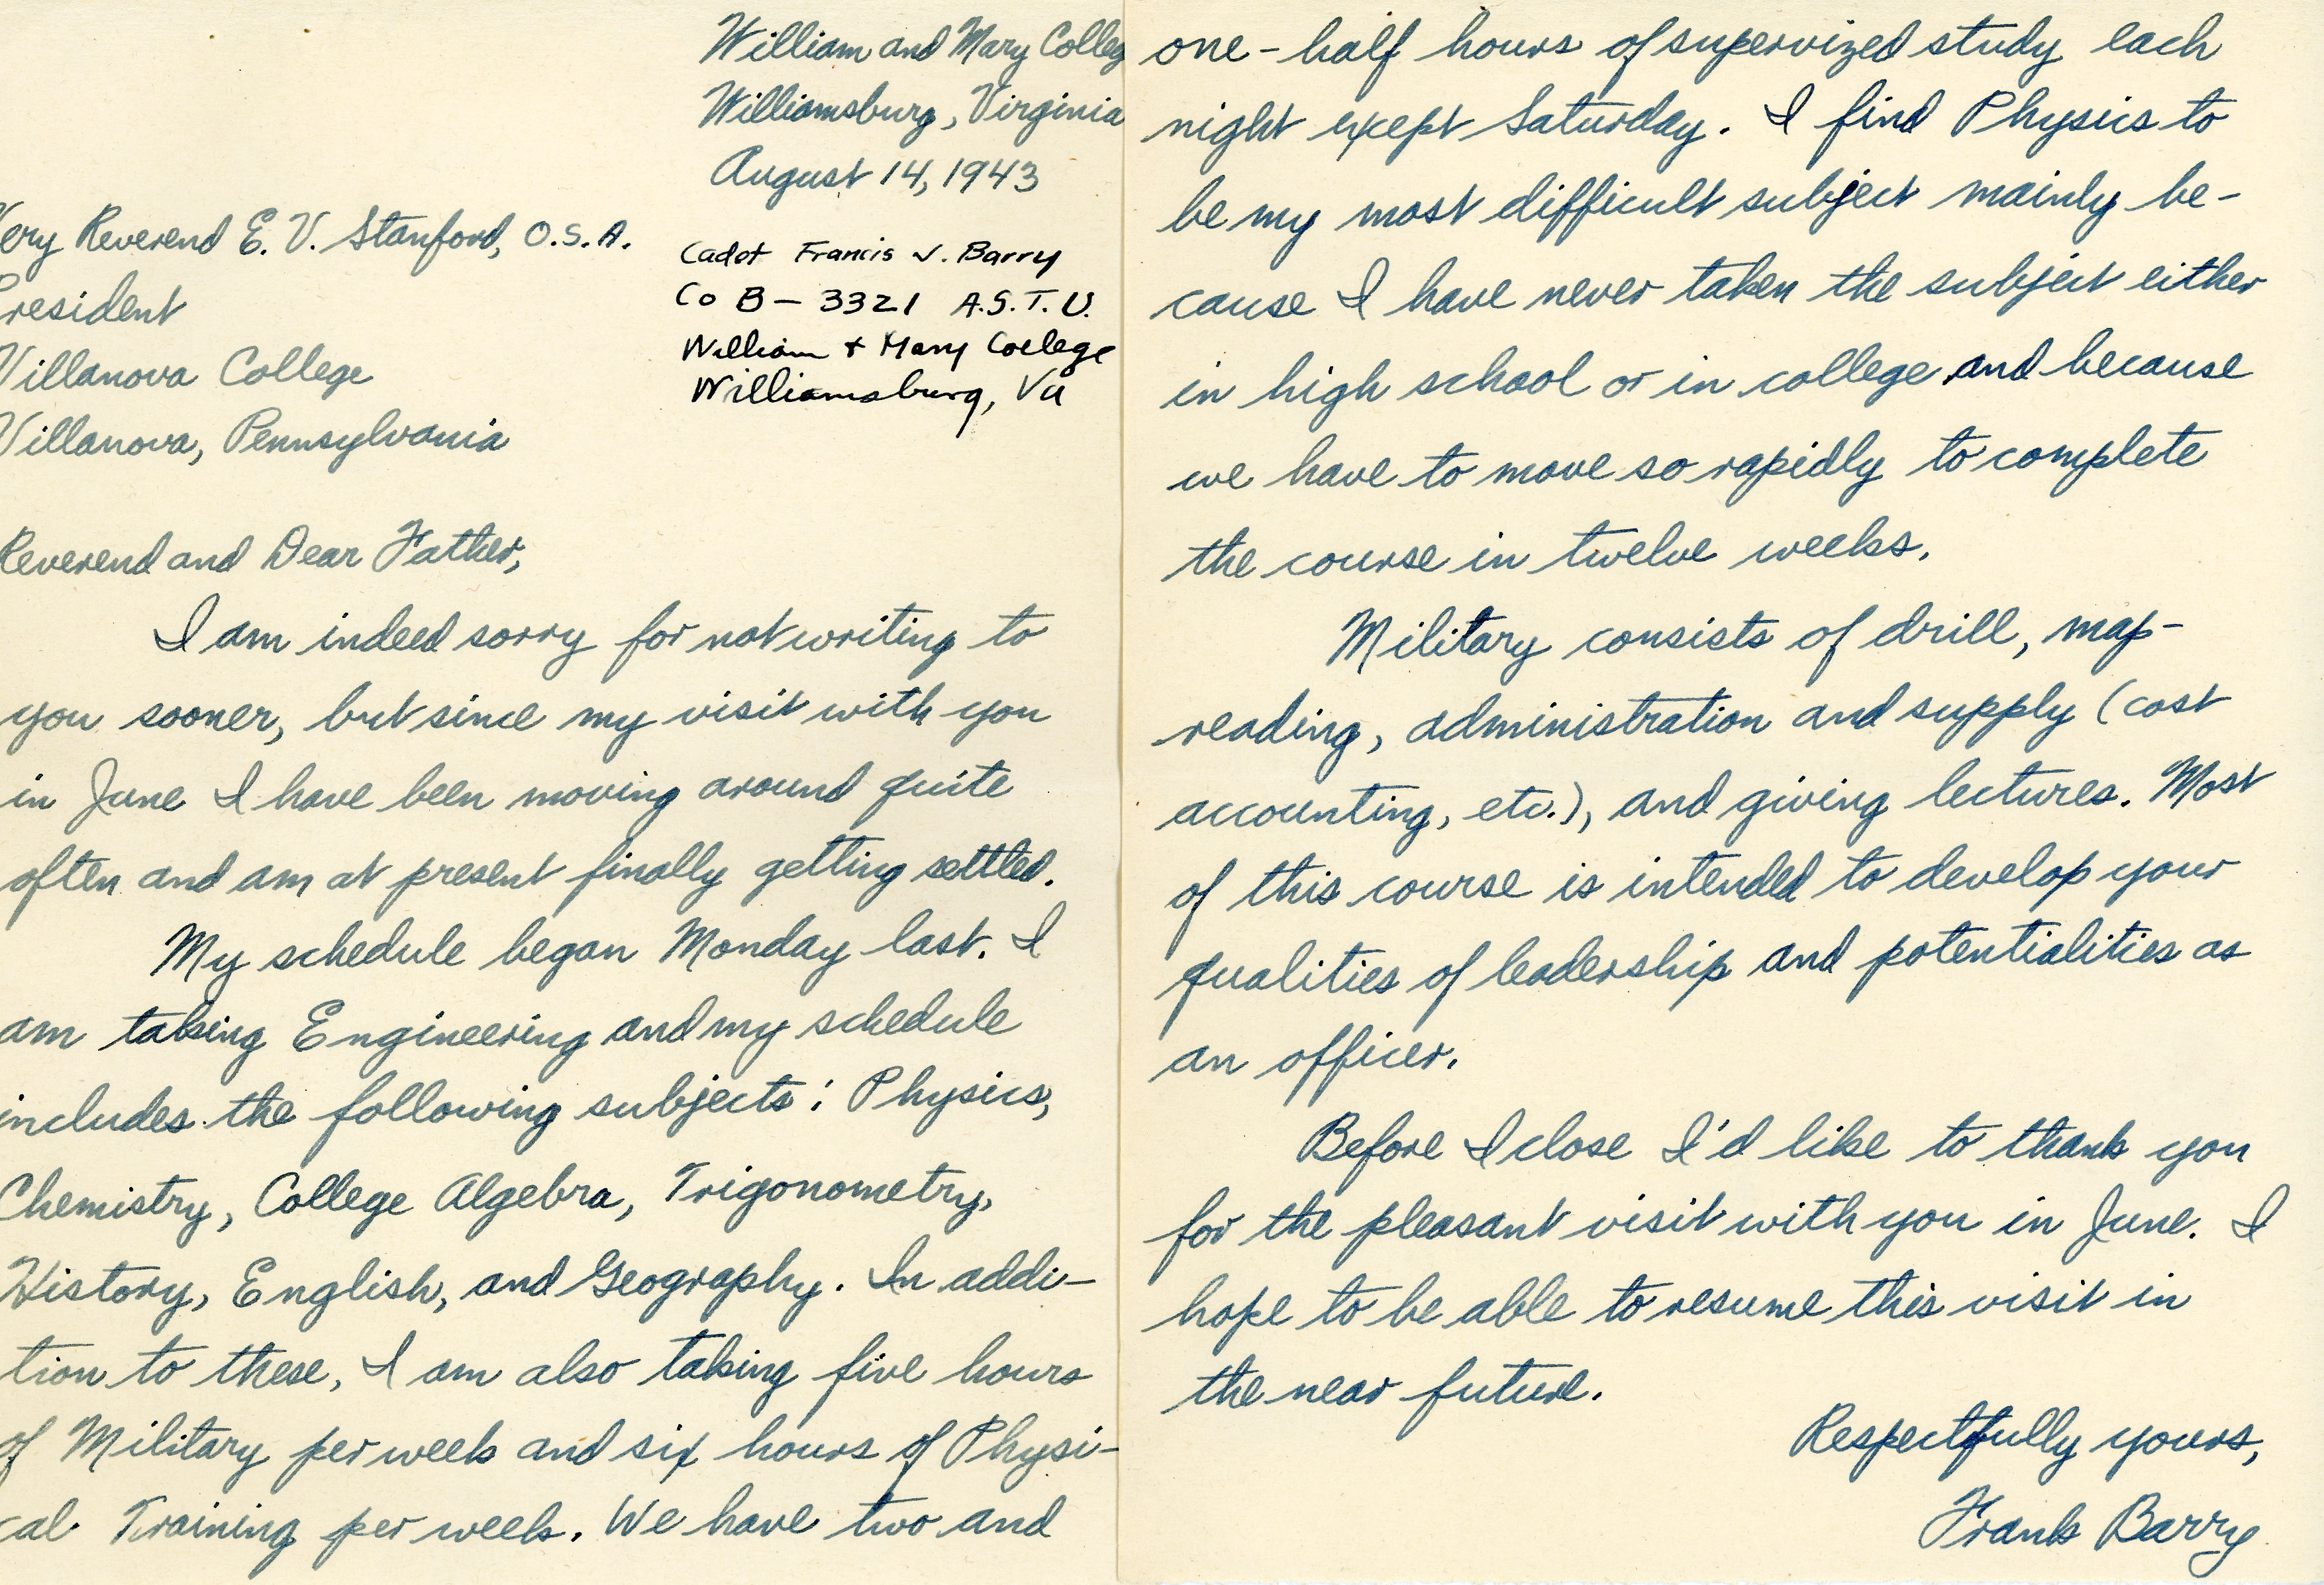 Wartime correspondence of Pvt. Francis J. Barry